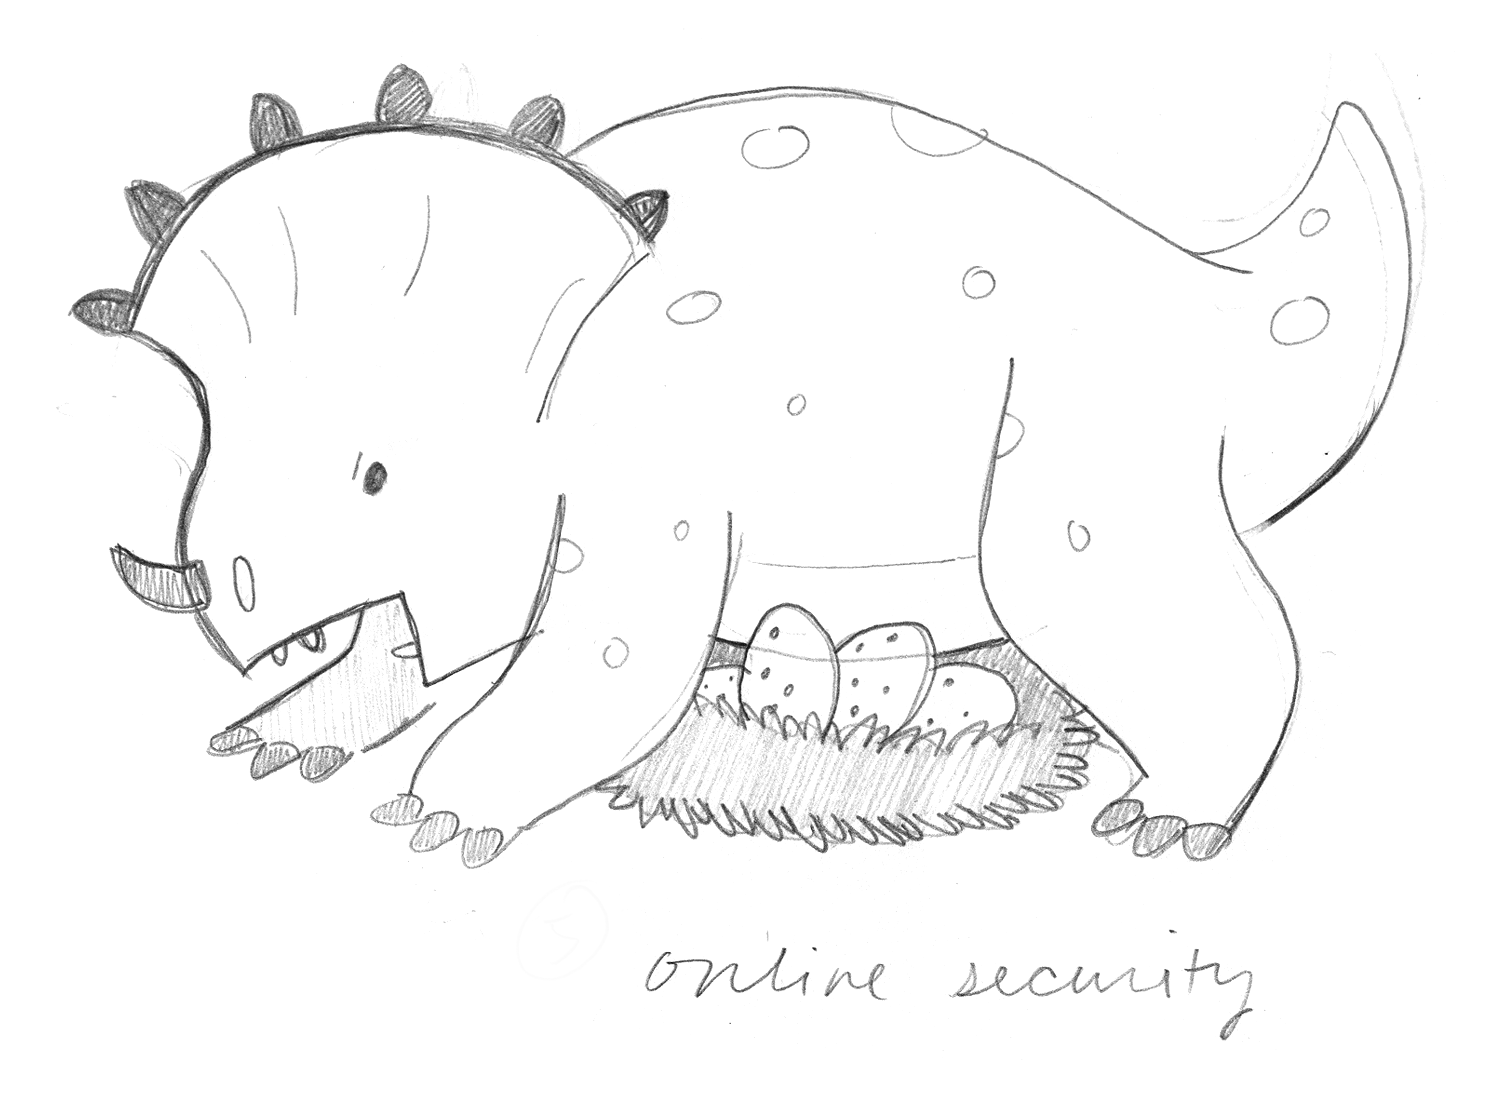 Online Security Sketch